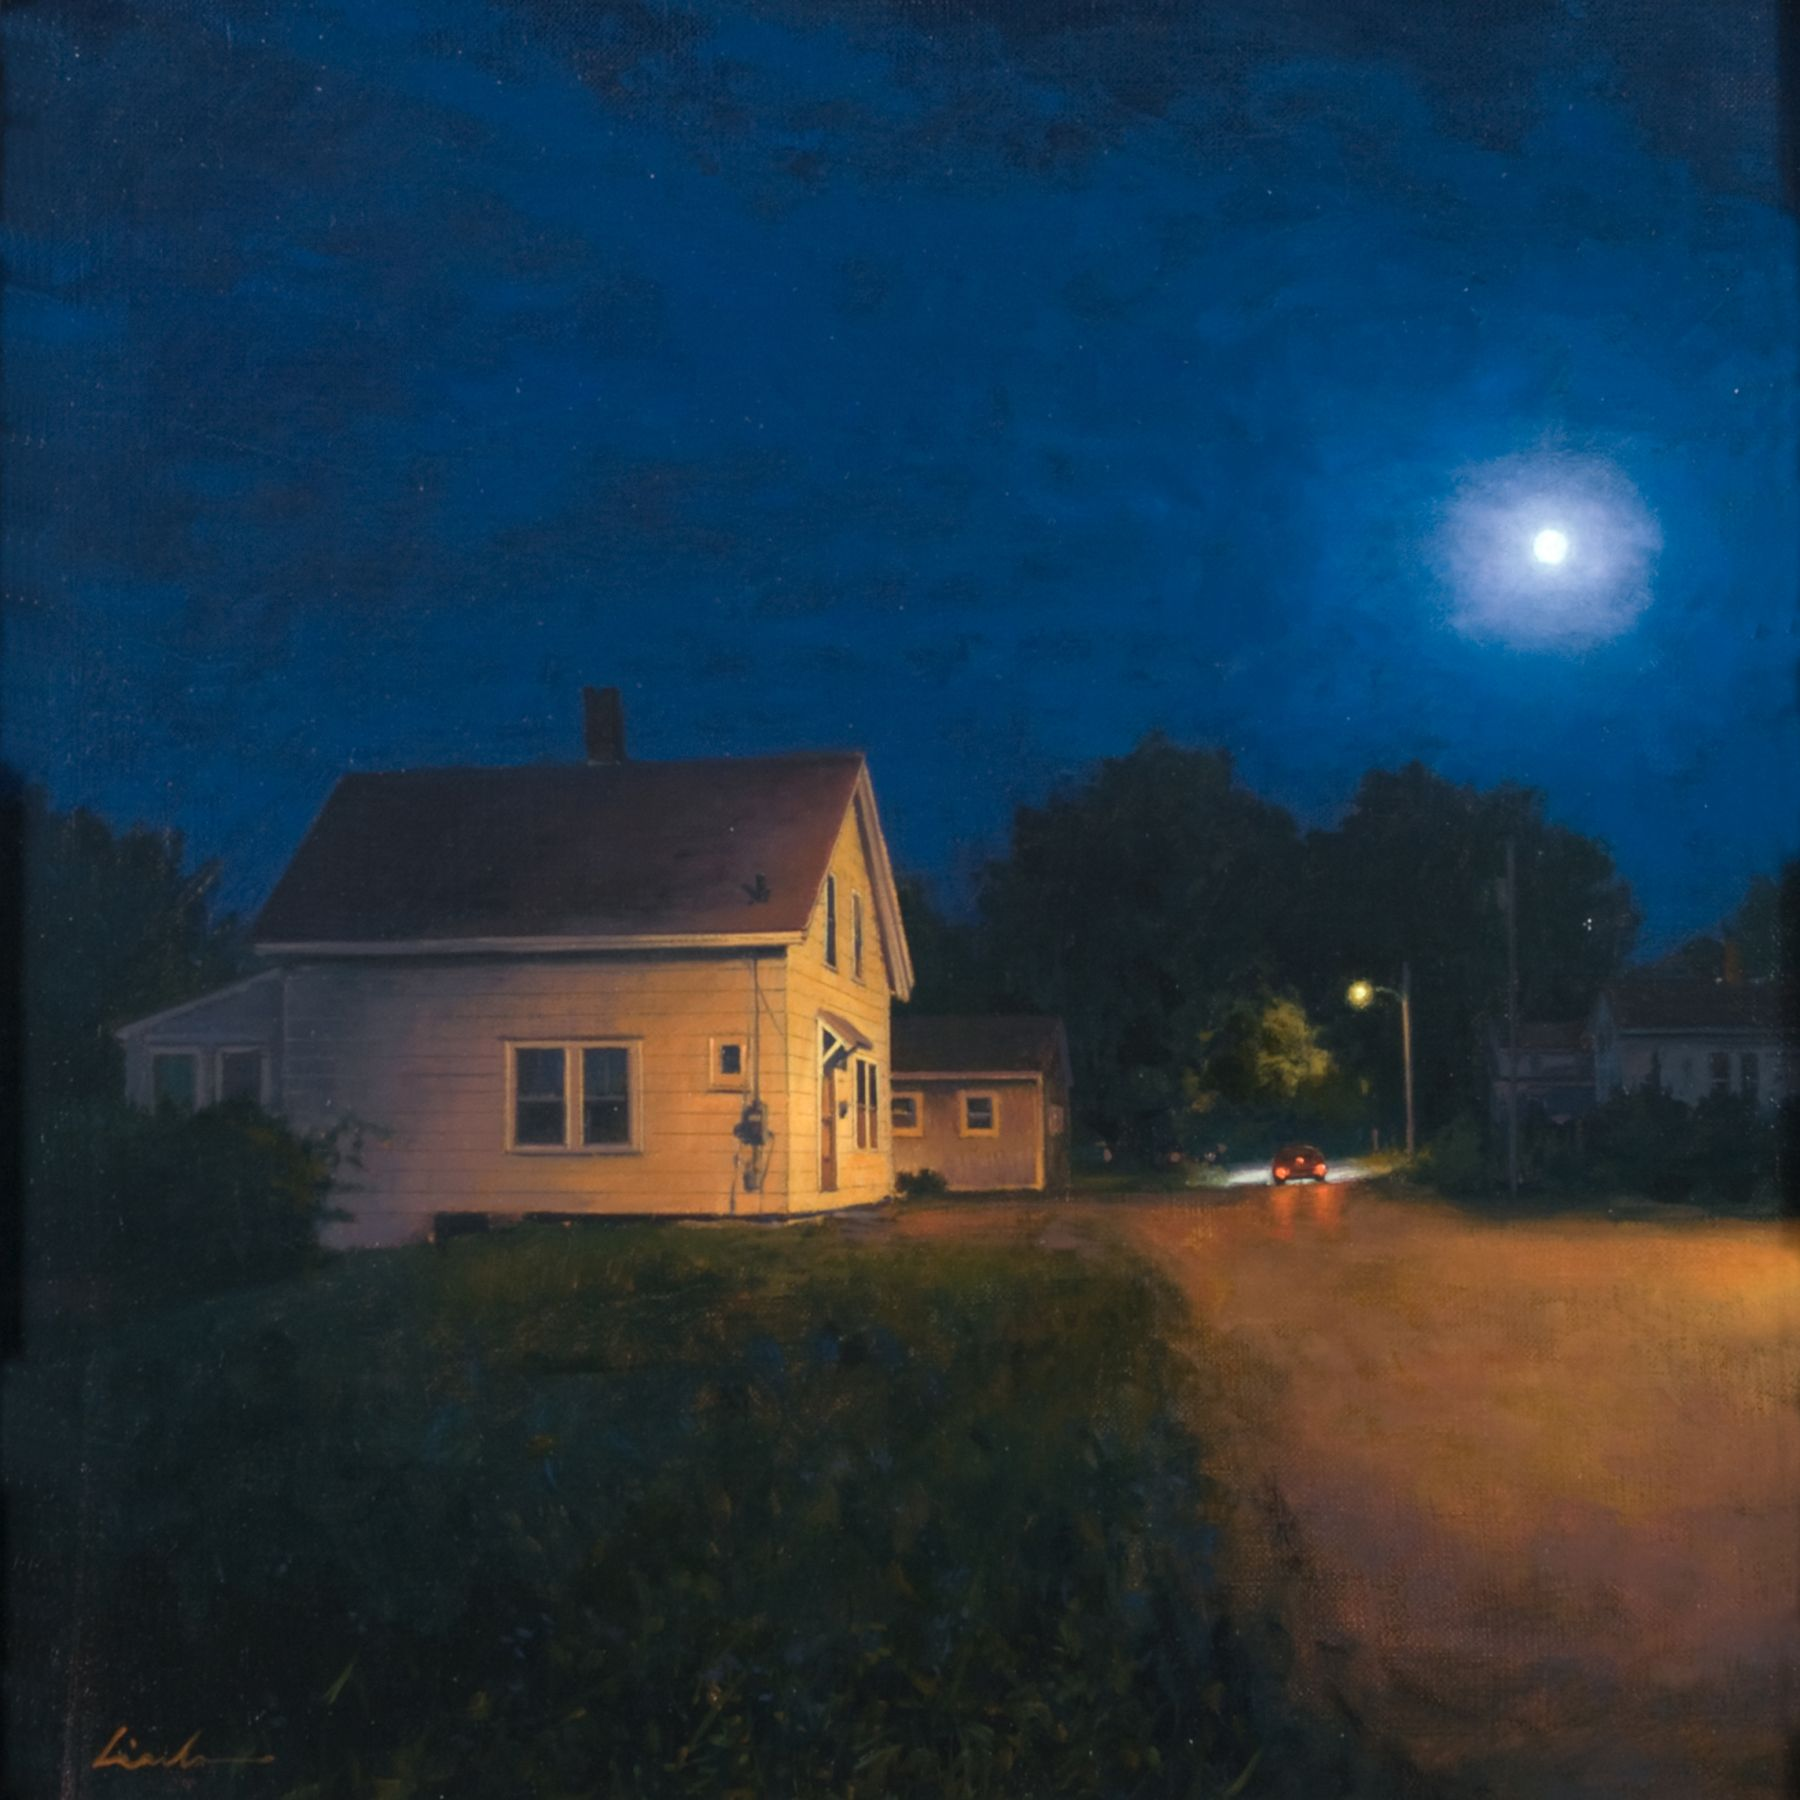 Linden Frederick, Night Out (SOLD), 2008, oil on panel, 12 1/4 x 12 1/4 inches